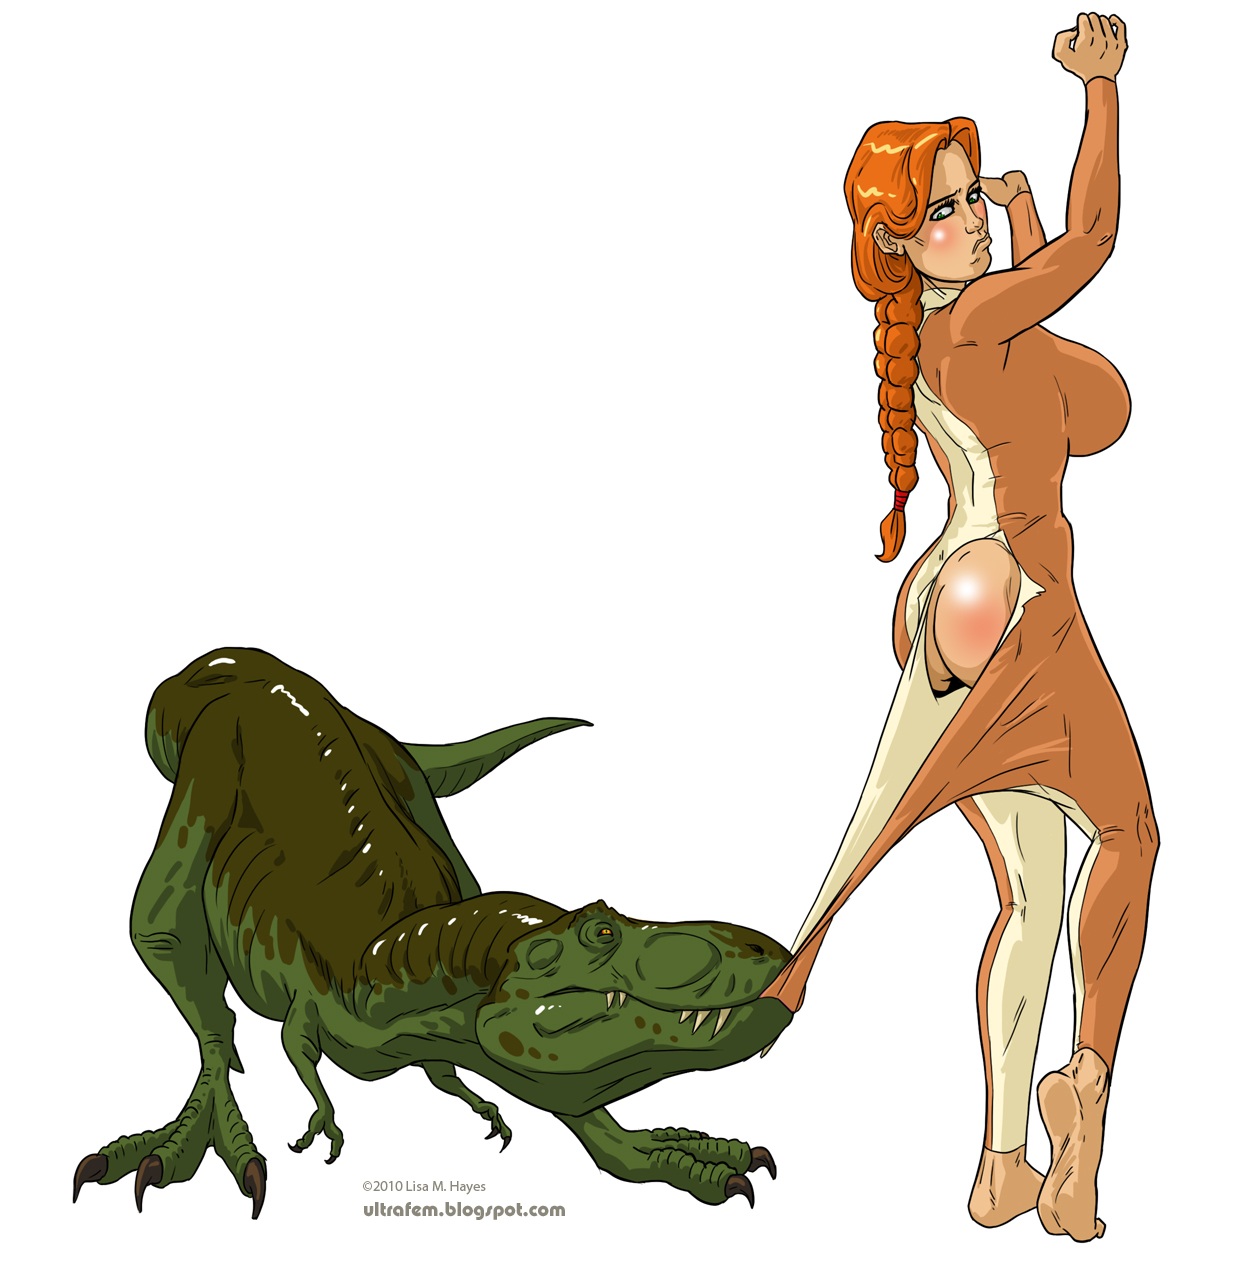 Dinosaur sex nsfw photo